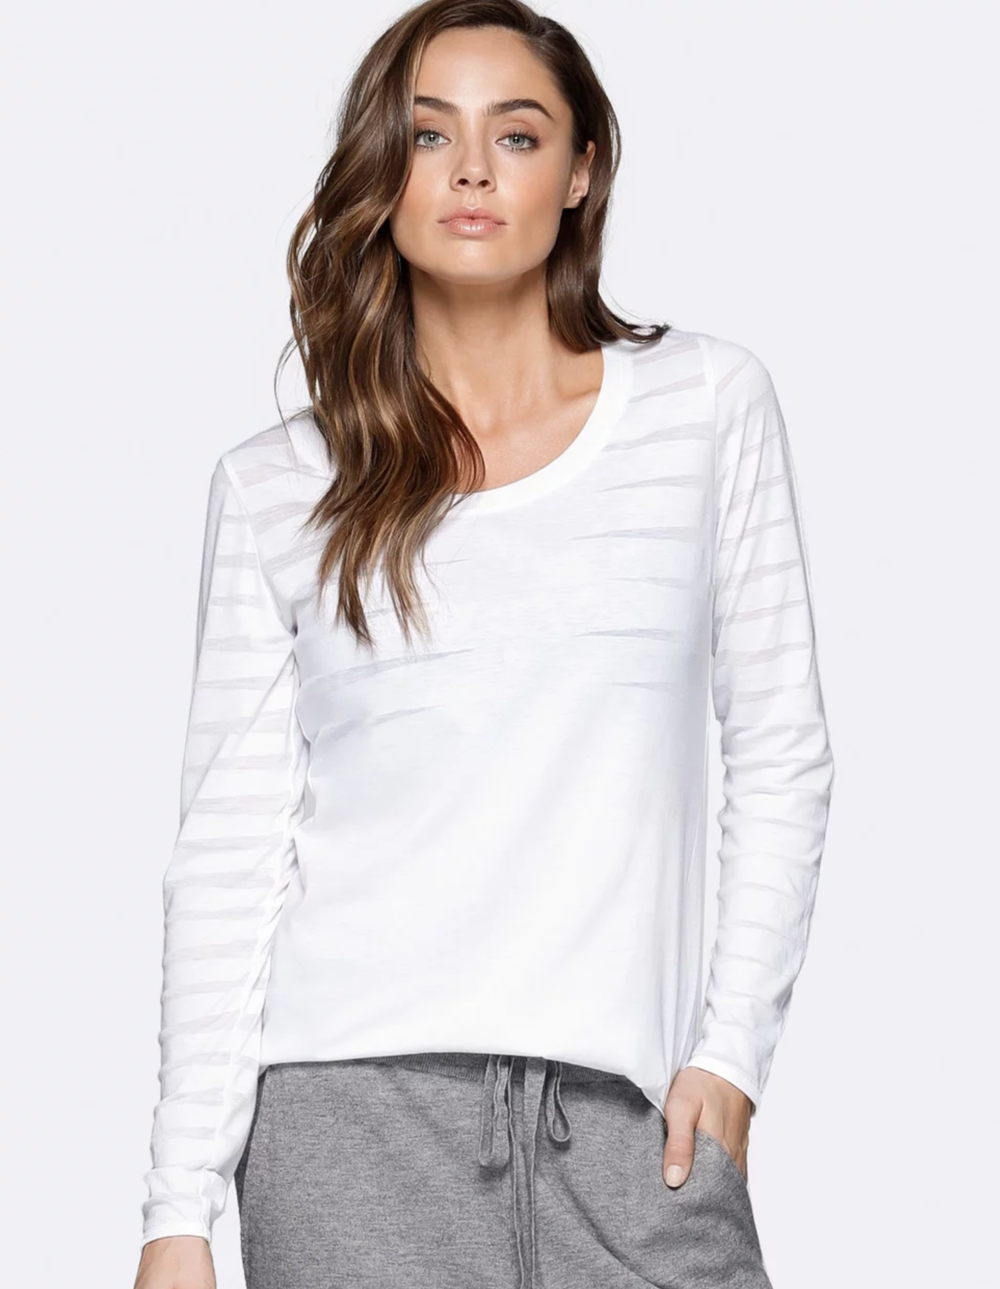 Lorna Jane Harlow long sleeve top $69.99